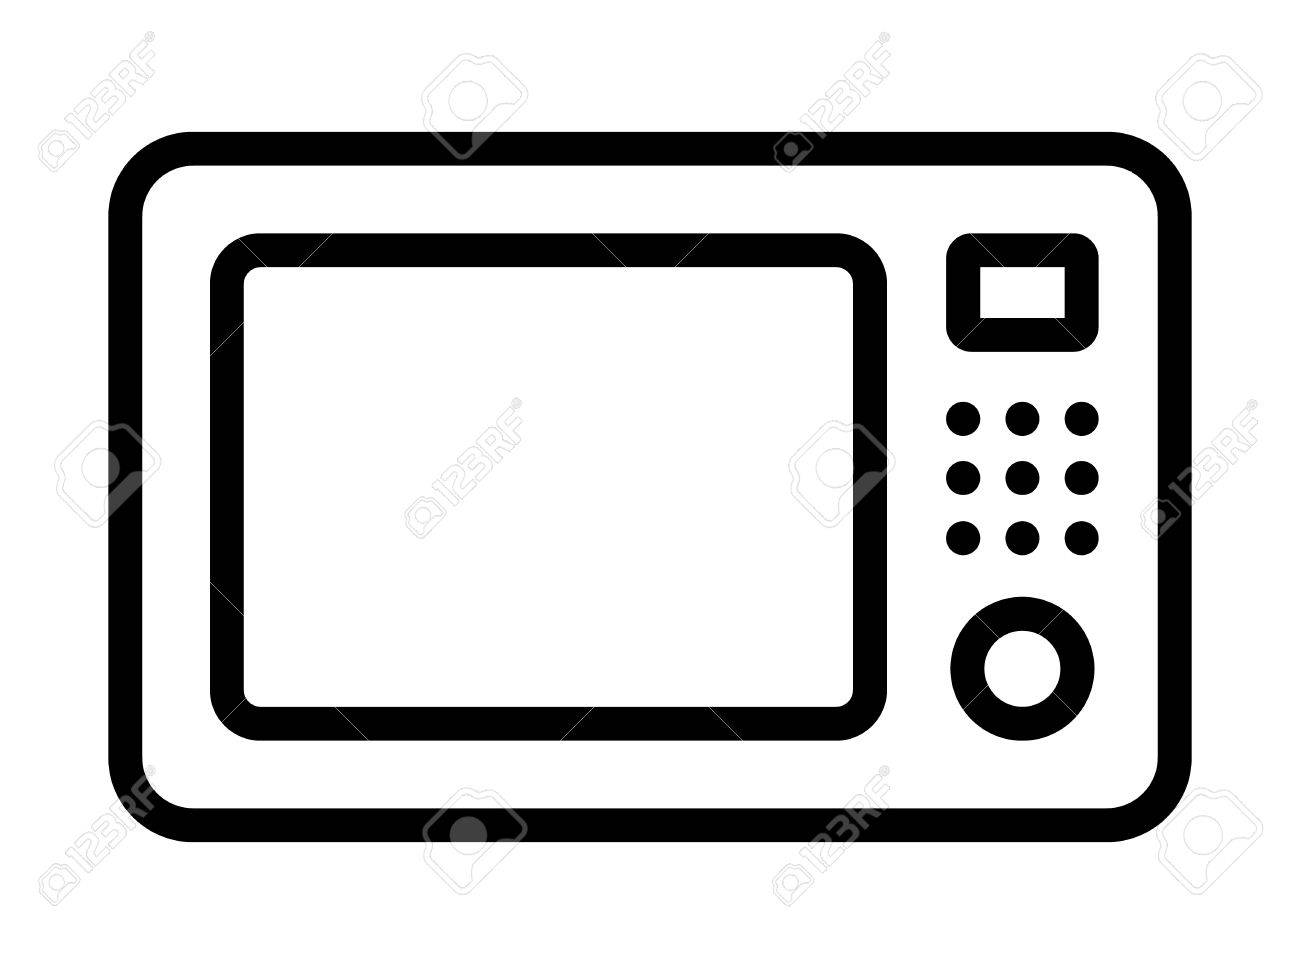 1300x974 Microwave Countertop Oven Line Art Icon For Apps And Websites